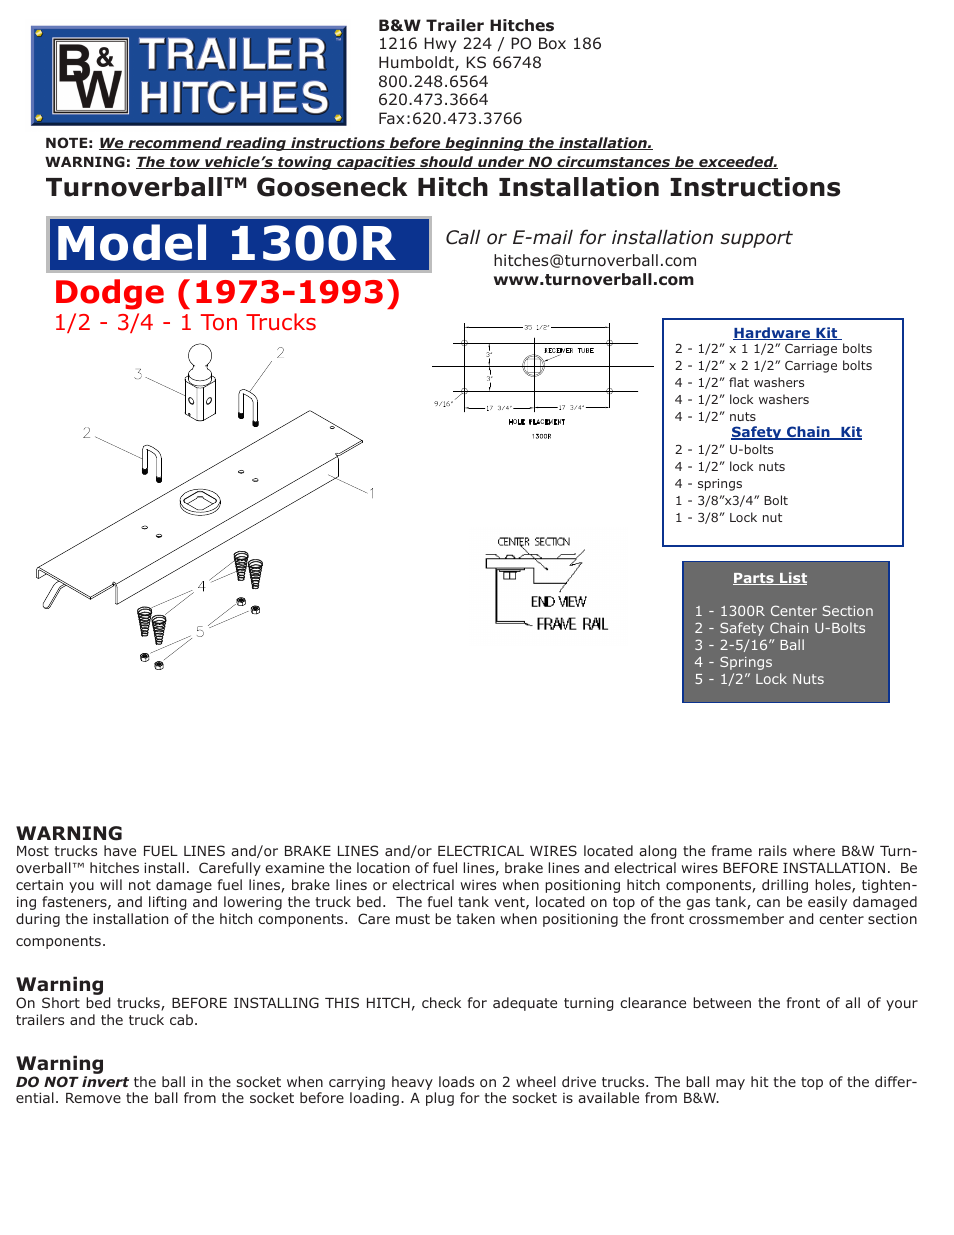 B&W Trailer Hitches Turnoverball Model 1300 (Dodge) User Manual | 2 pages